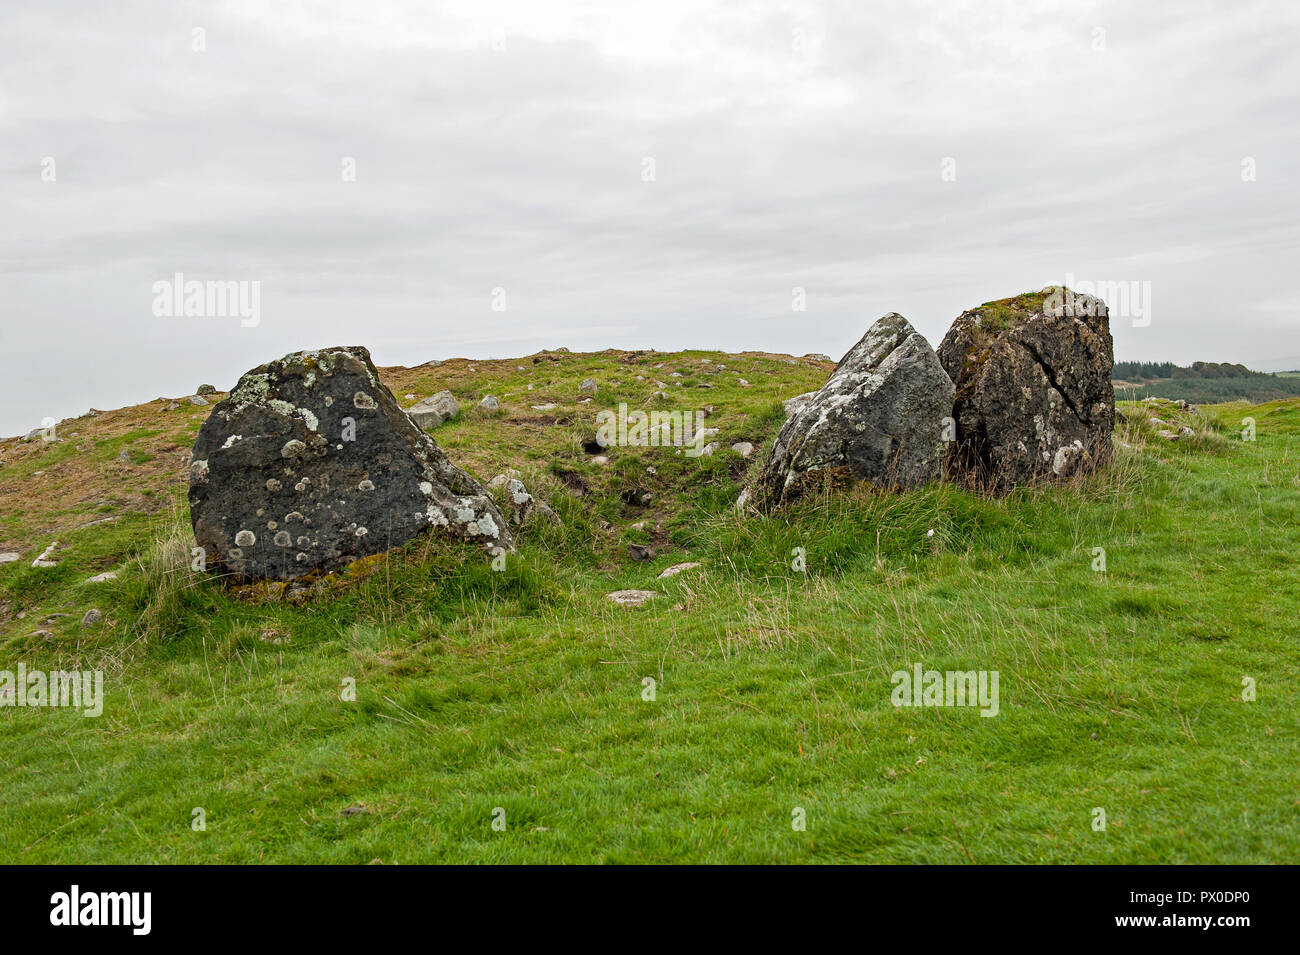 Loughcrew Ancient megalithic Tomb, Co Meath, Ireland Stock Photo